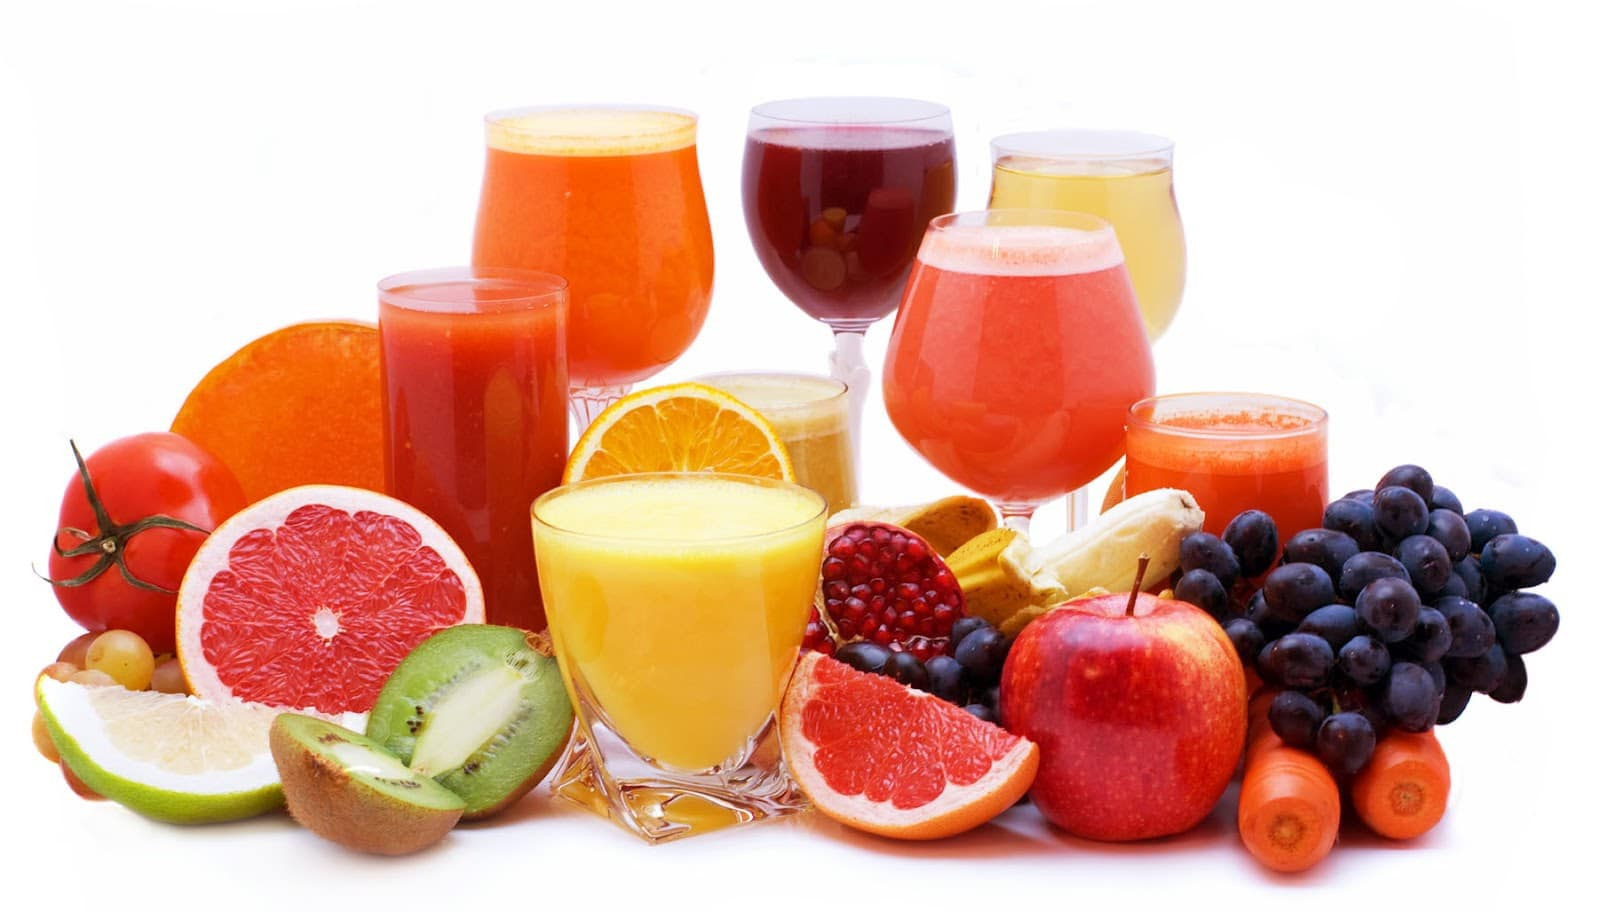 Juice Bar - Fruit and Vegetable Juices and Smoothies